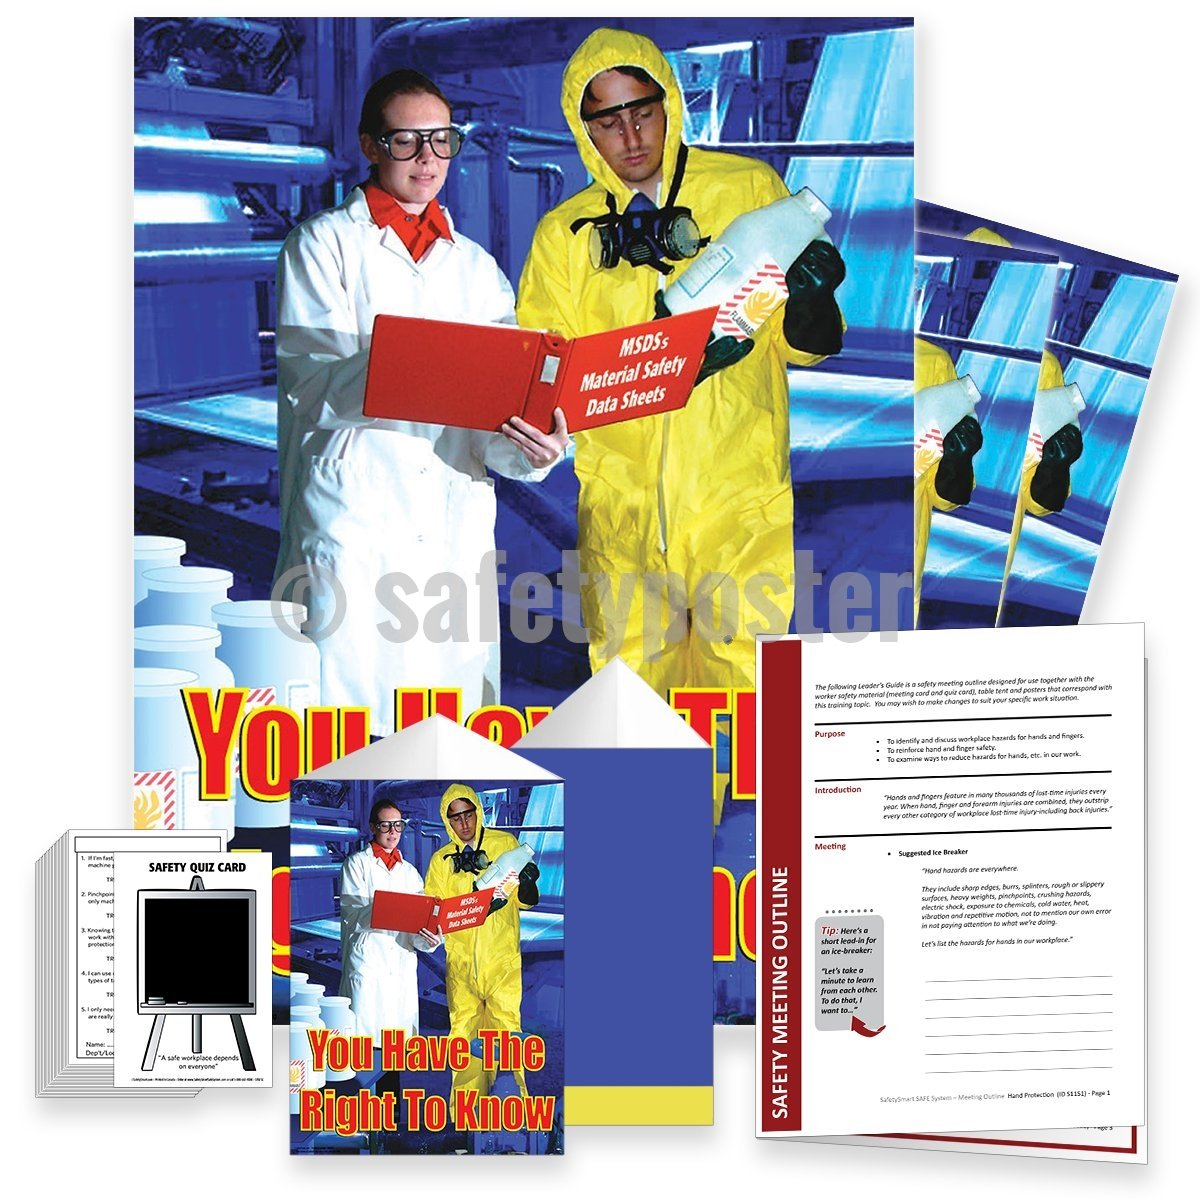 Safety Meeting Kit - You Have The Right To Know Msds Kits